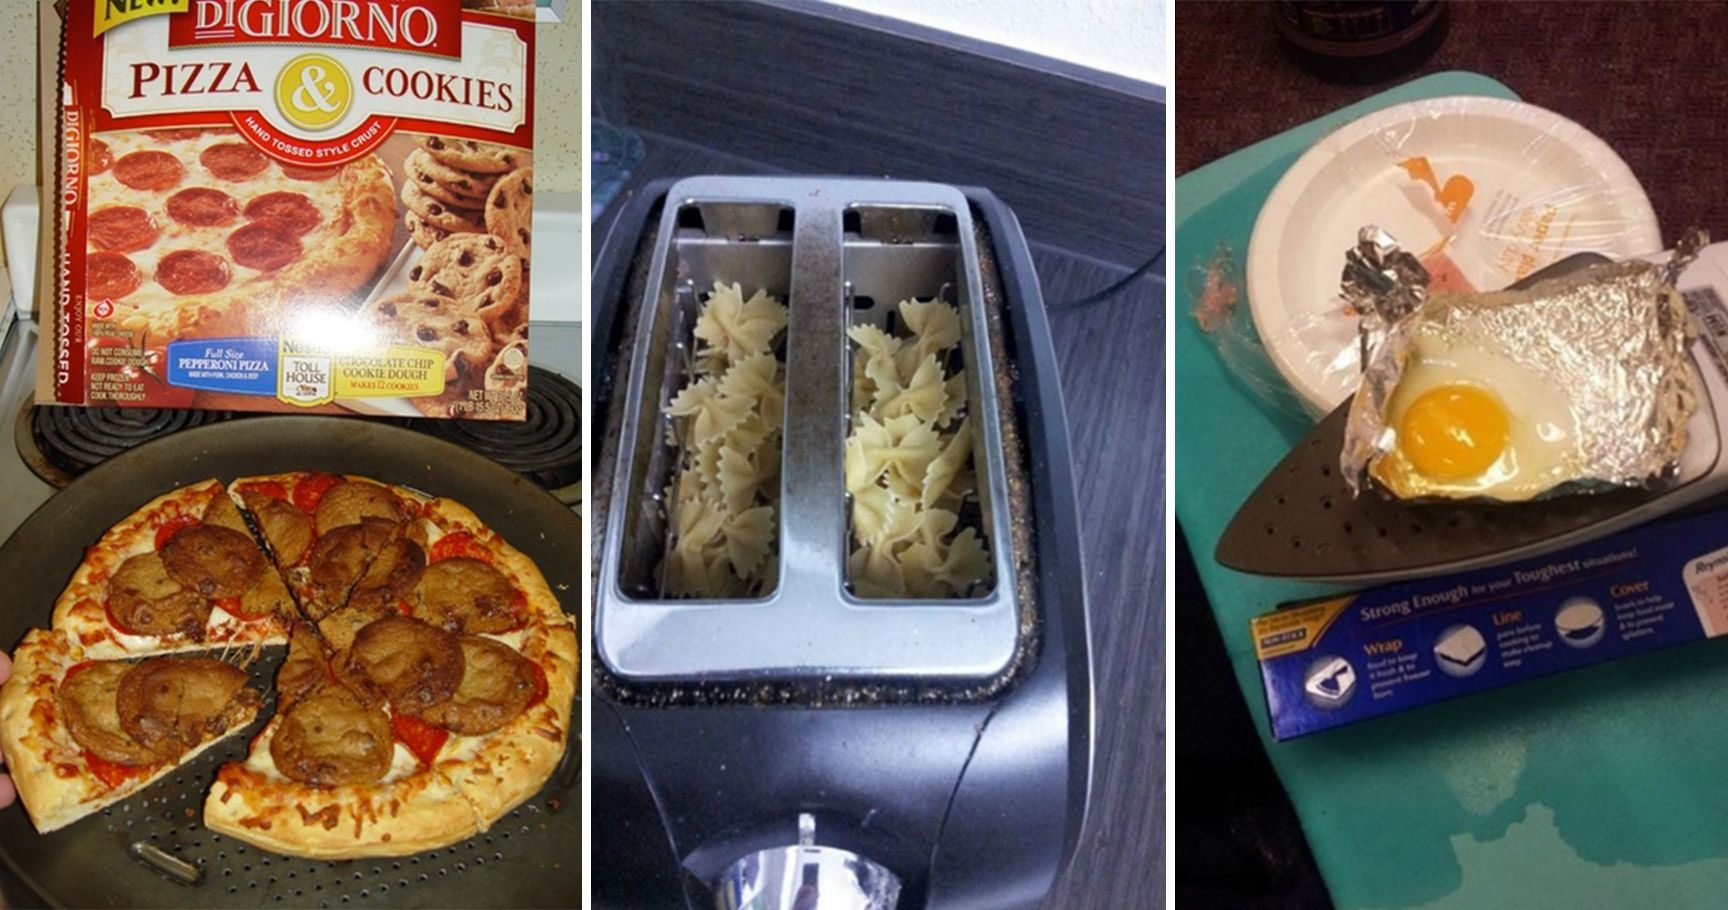 15 Drunk Food Fails That Will Make You ROFL